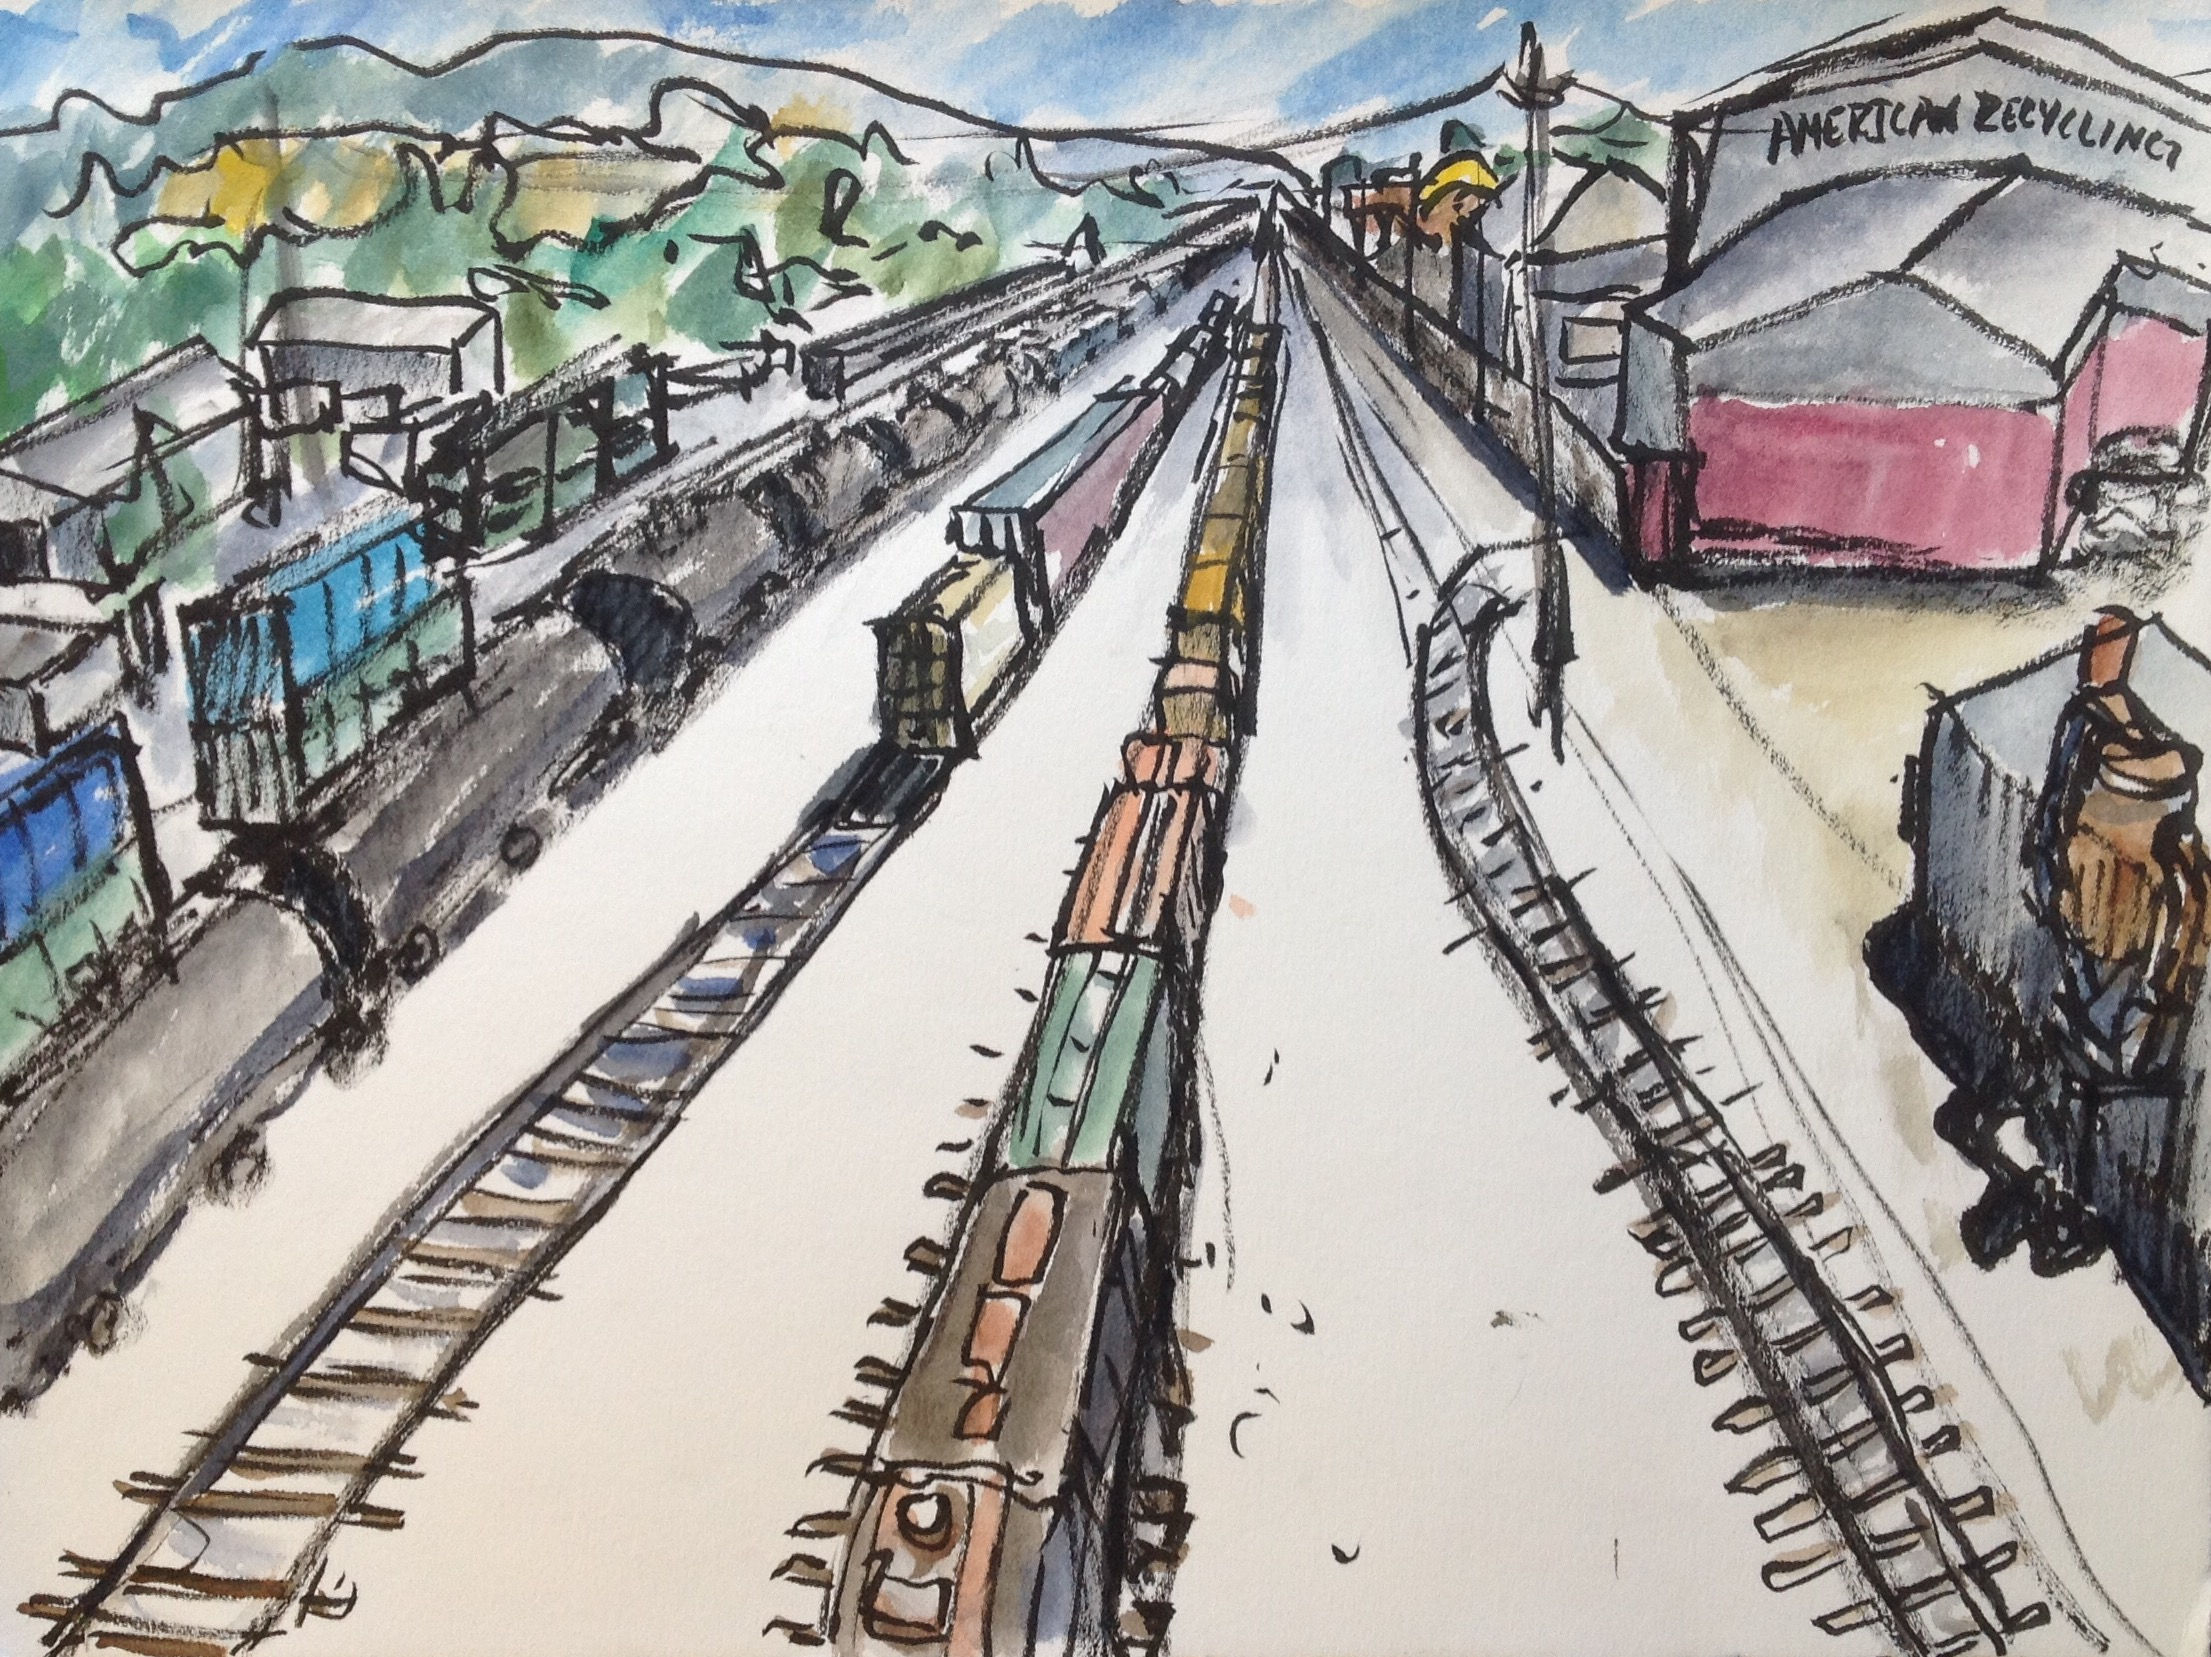 As I sketched this from my position on the Fancher bridge I enjoyed watching the trains come and go. Sketching while surrounded by activity and change is part of my favorite things about sketching on location. When I packed up my kit, the scene looked quite different than when I'd started thanks to trains leaving and new trains arriving.